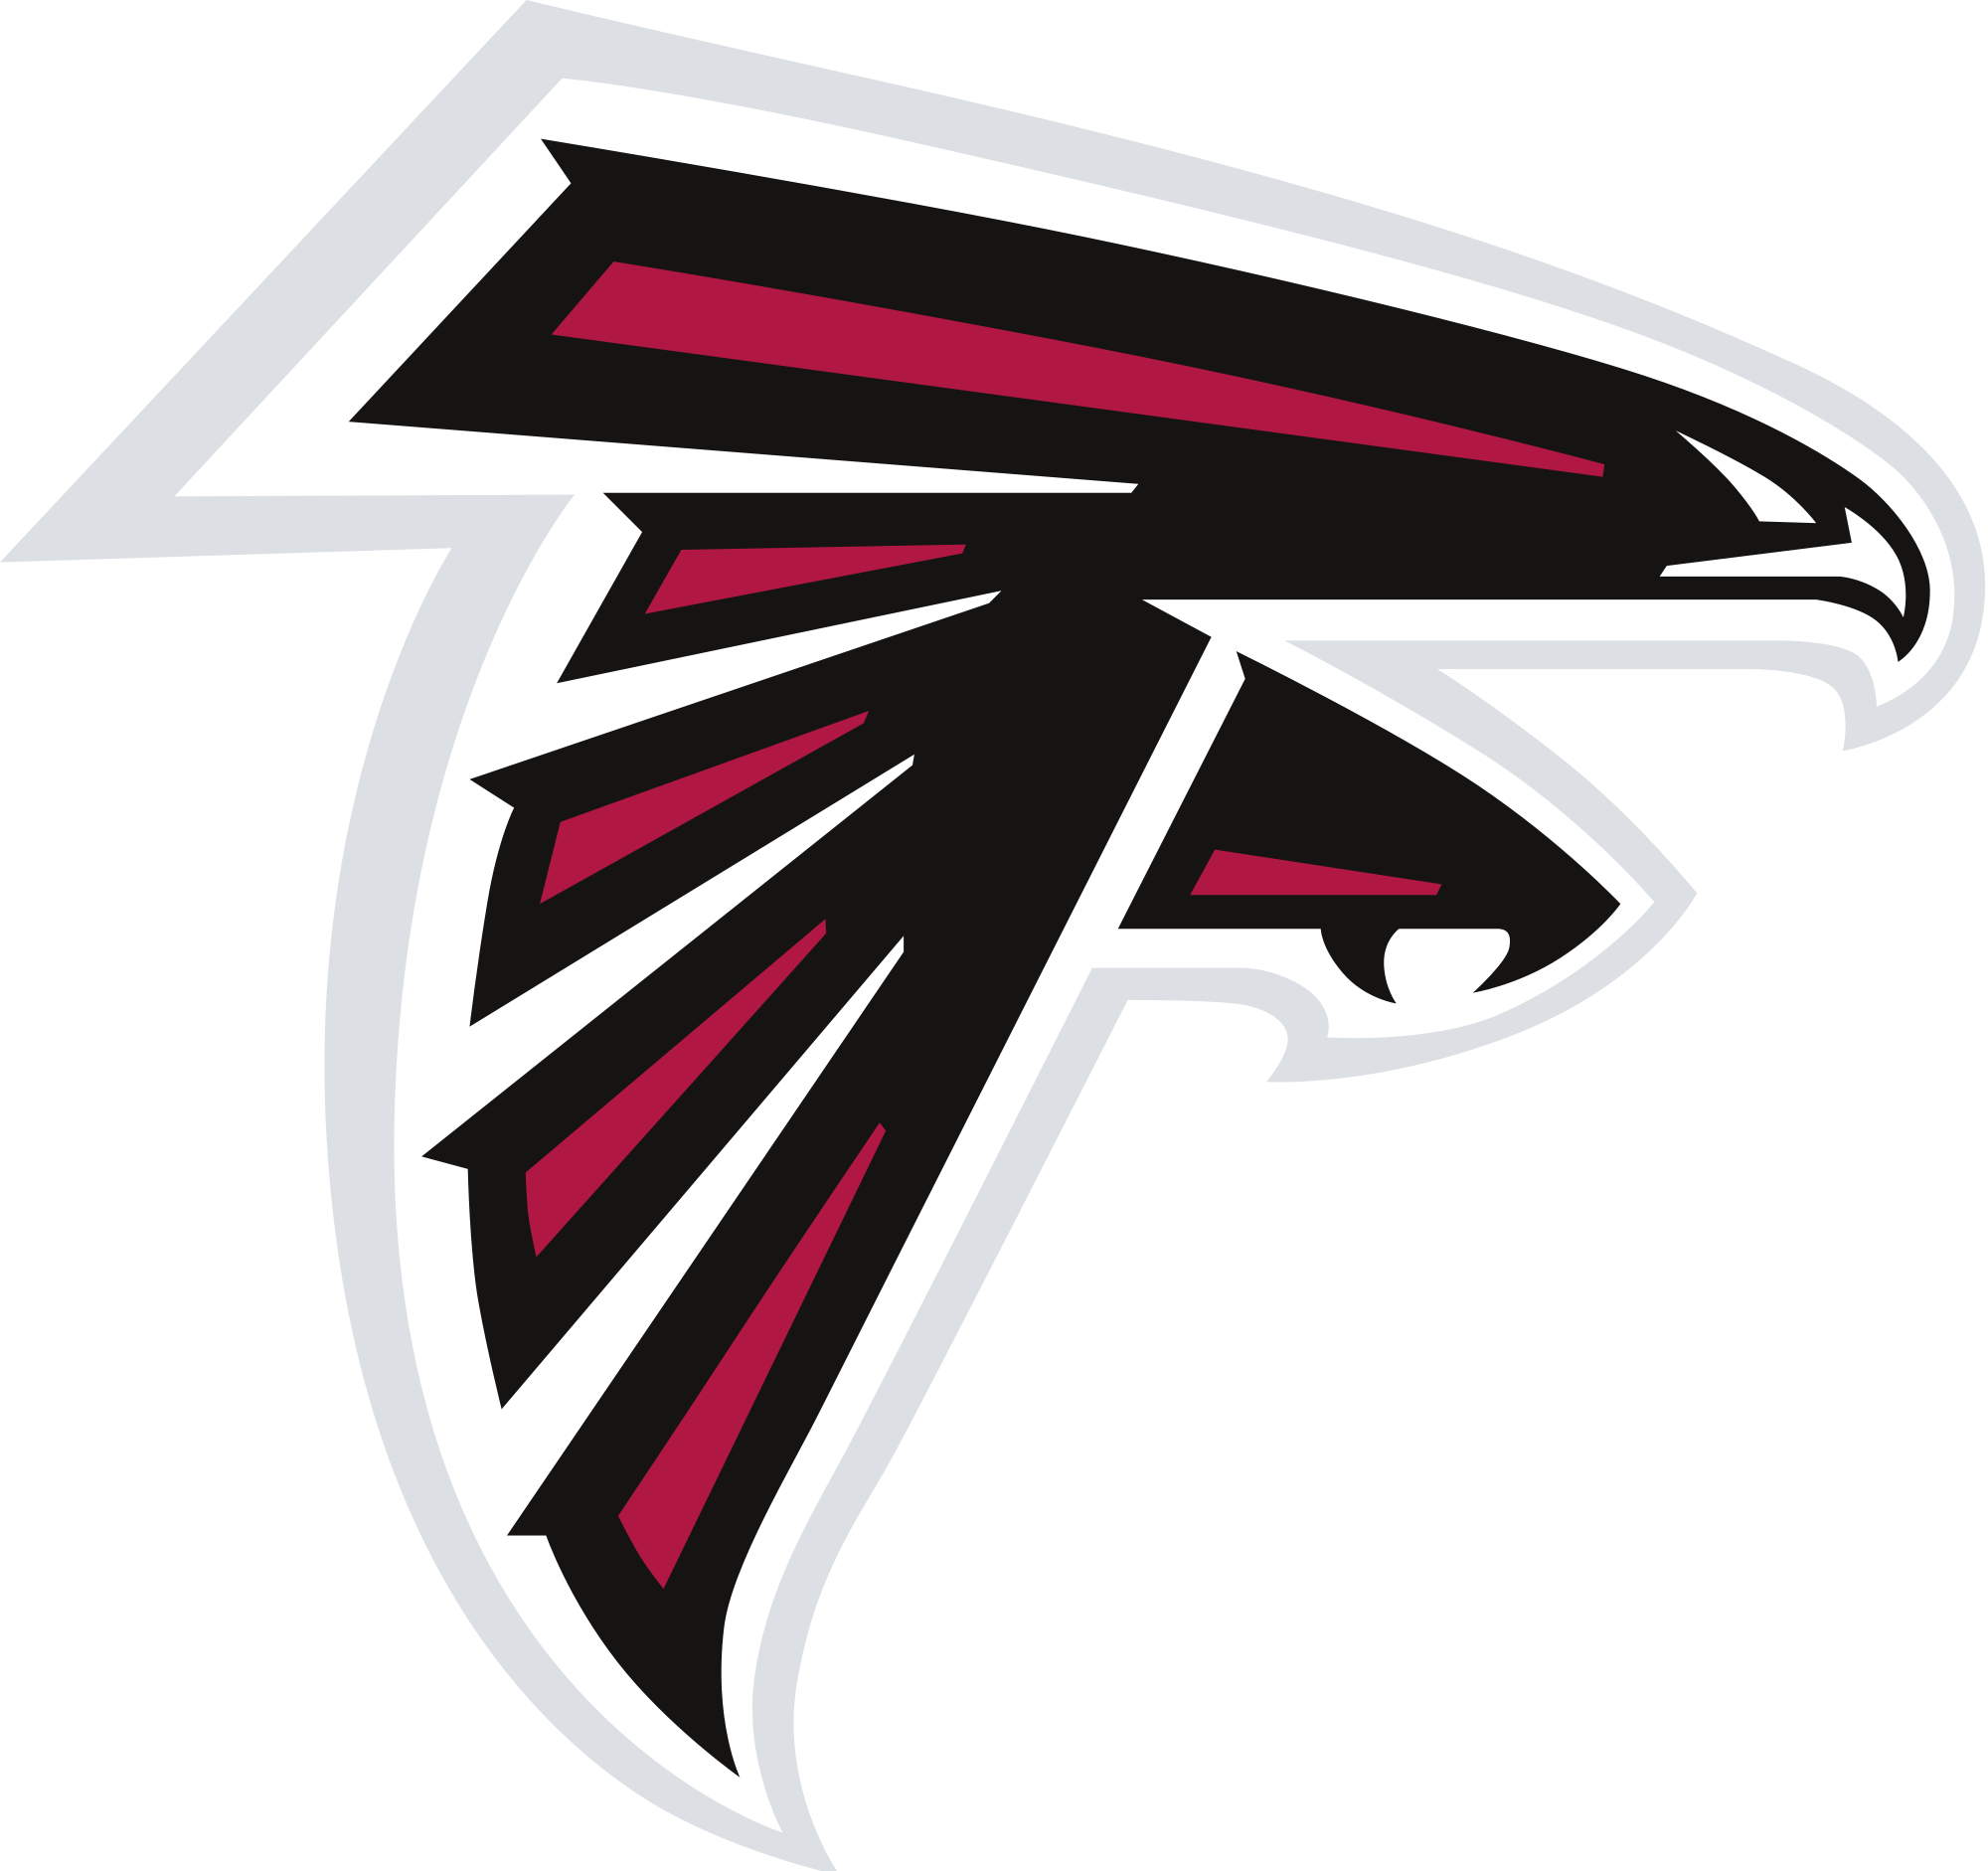 Atlanta Falcons Logo Atlanta Falcons Atlanta Falcons Logo Atlanta Falcons Football